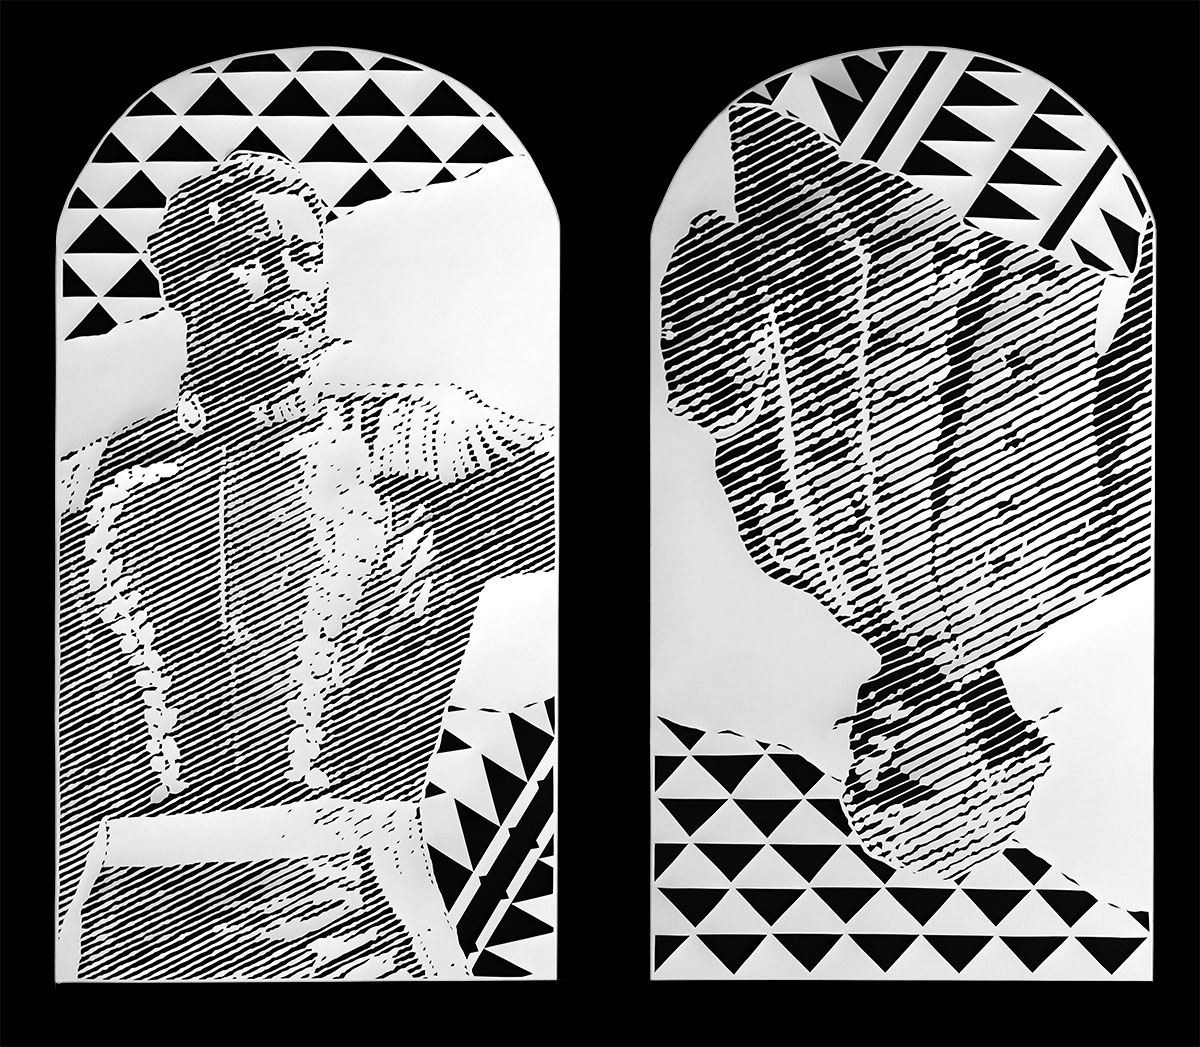 black and white graphic illustration of man in military regalia and another man in colonial style dress upside down